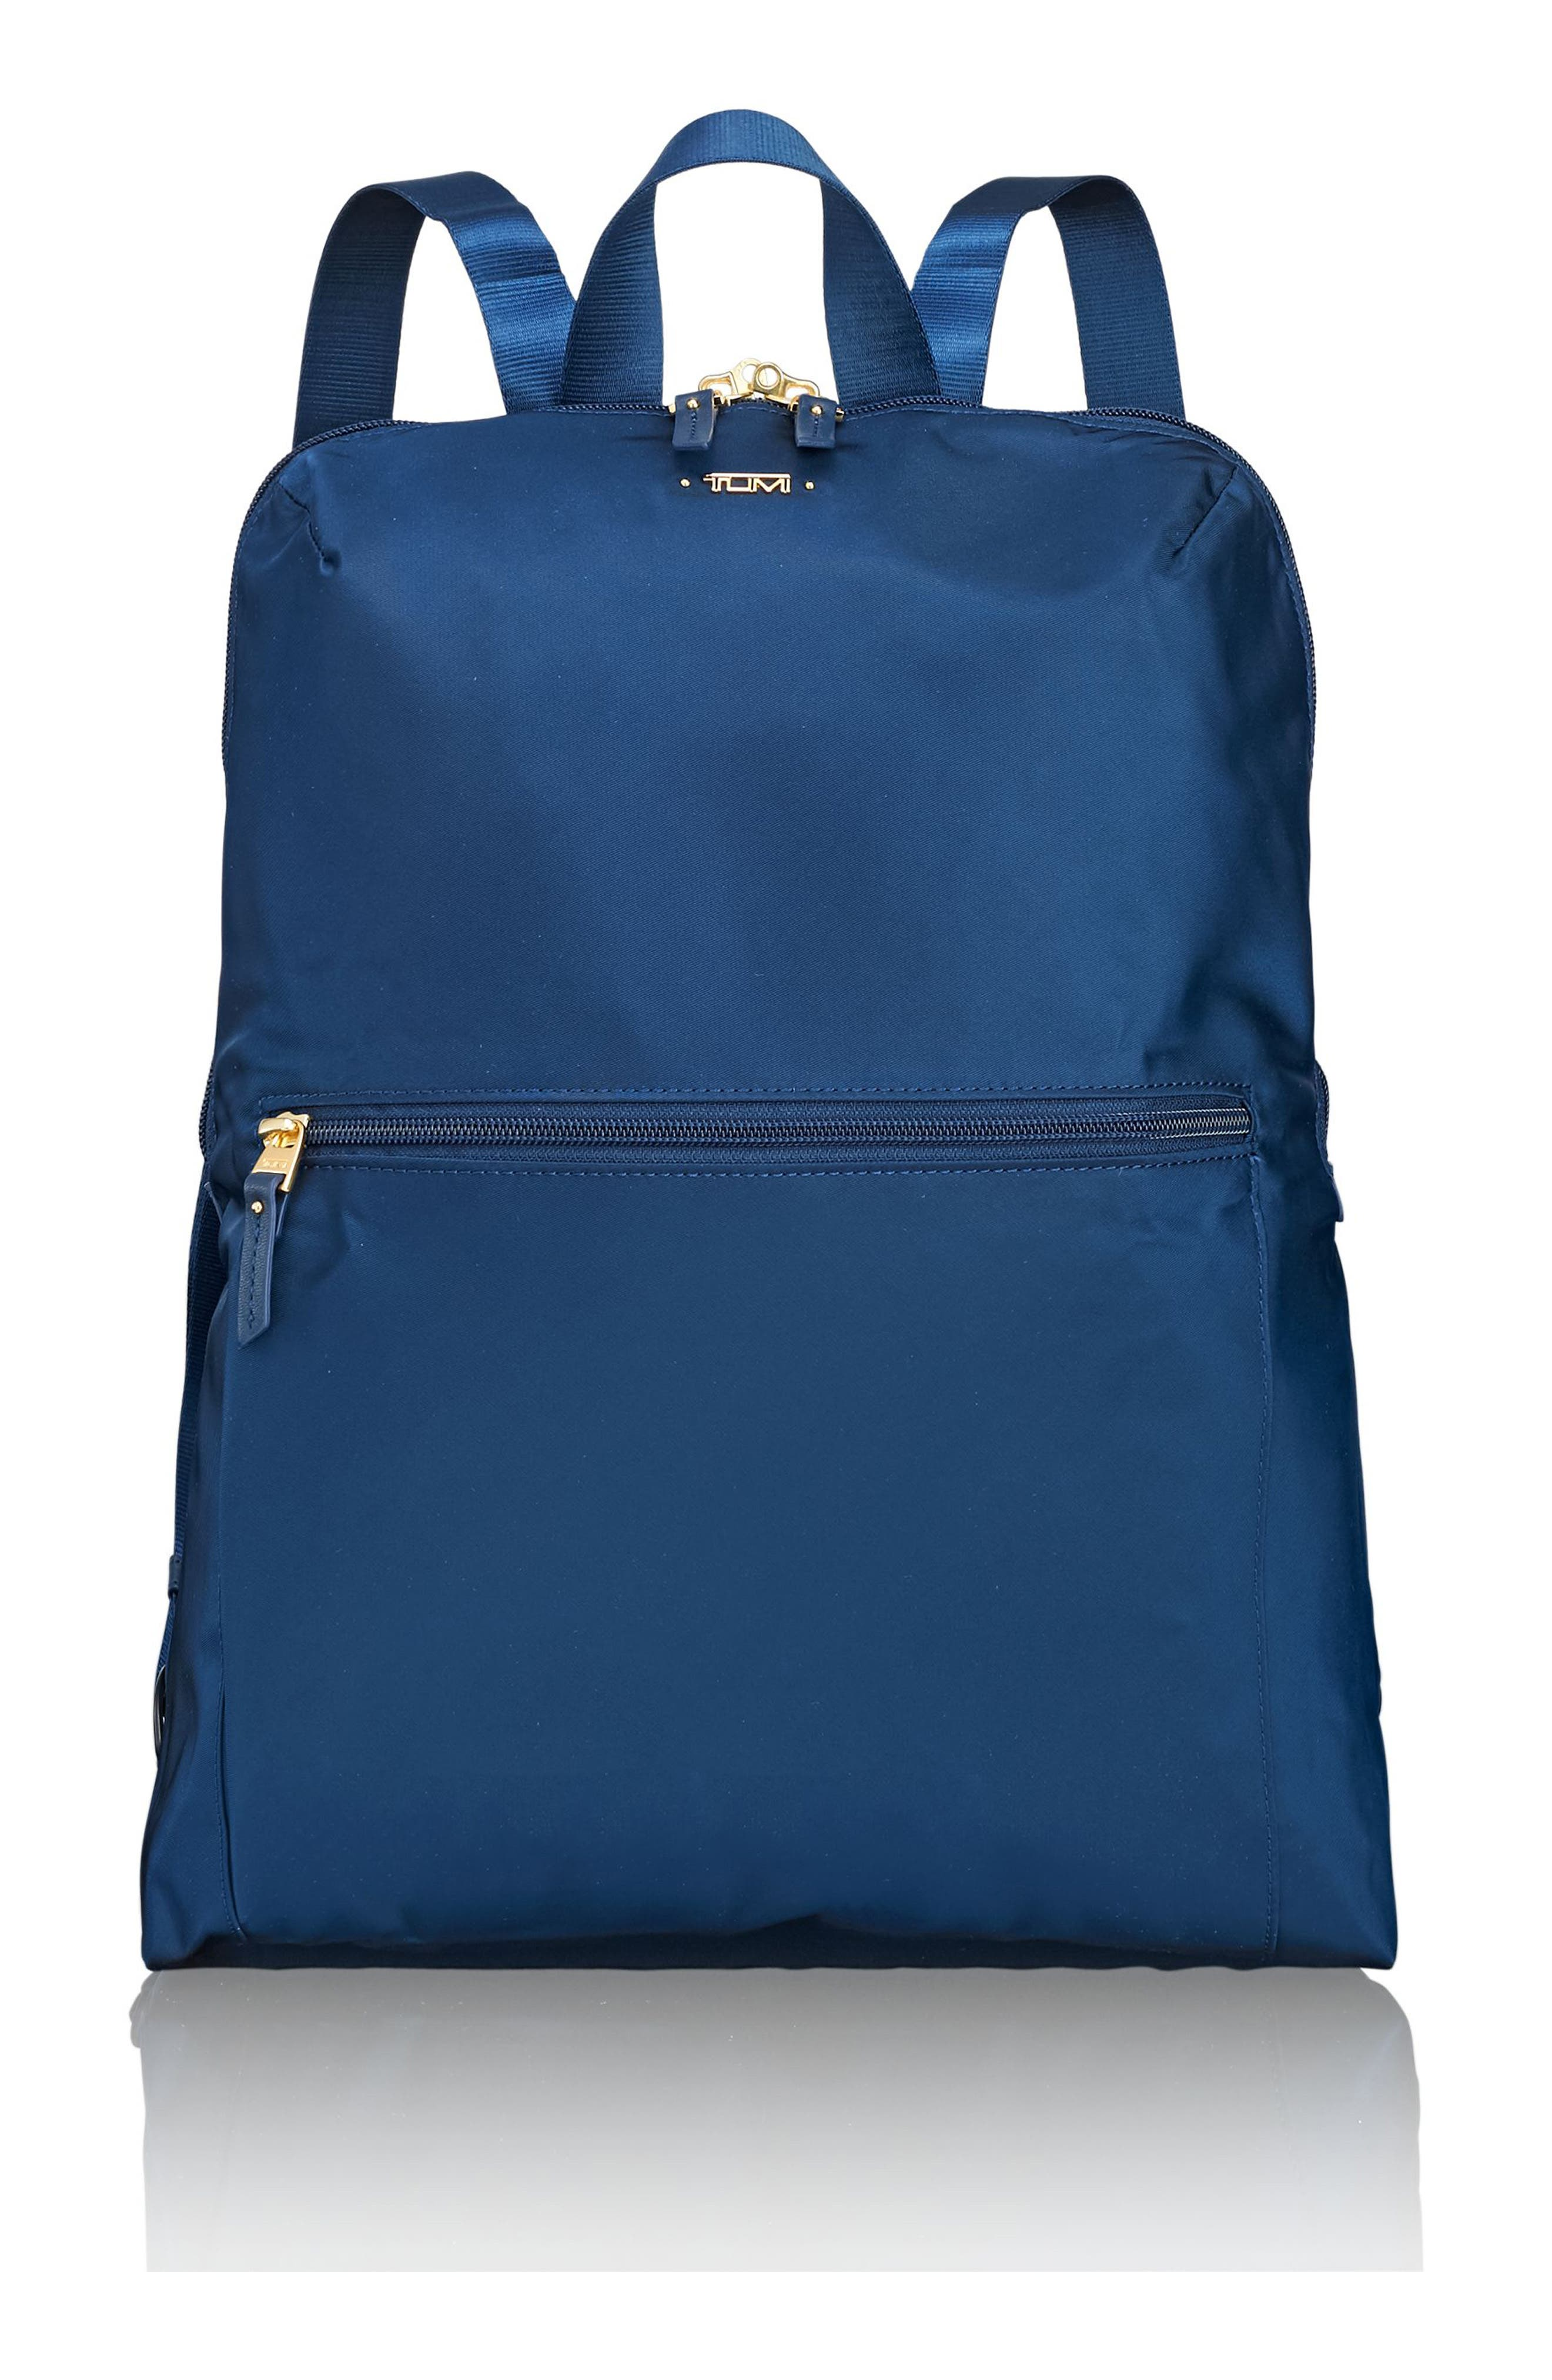 Just in Case<sup>®</sup> Back-Up Tavel Bag,                         Main,                         color, Ocean Blue